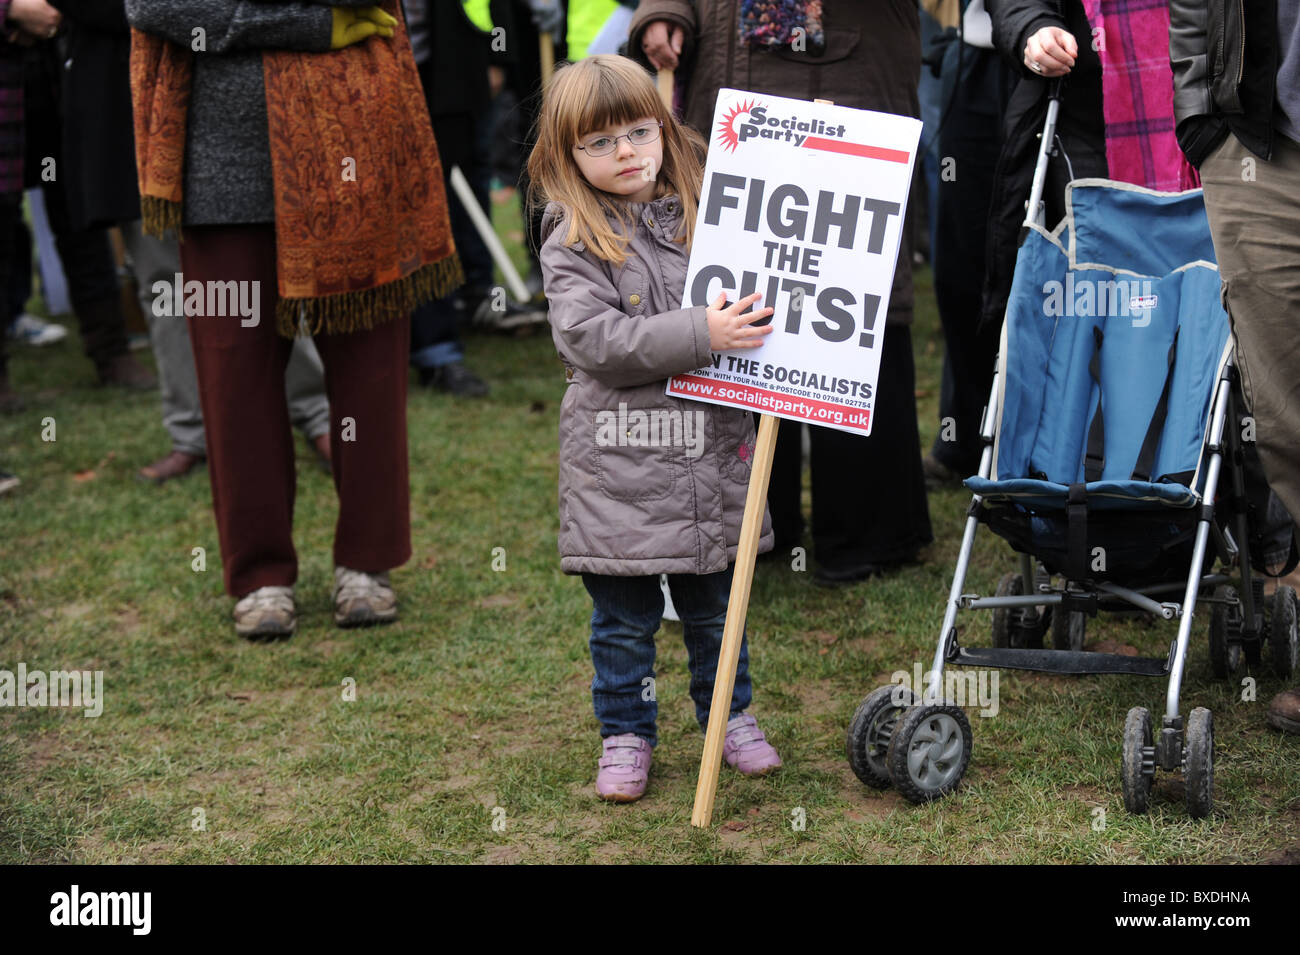 A young girl with a fight the cuts placard before a protest about the government's cuts to higher education - Stock Image